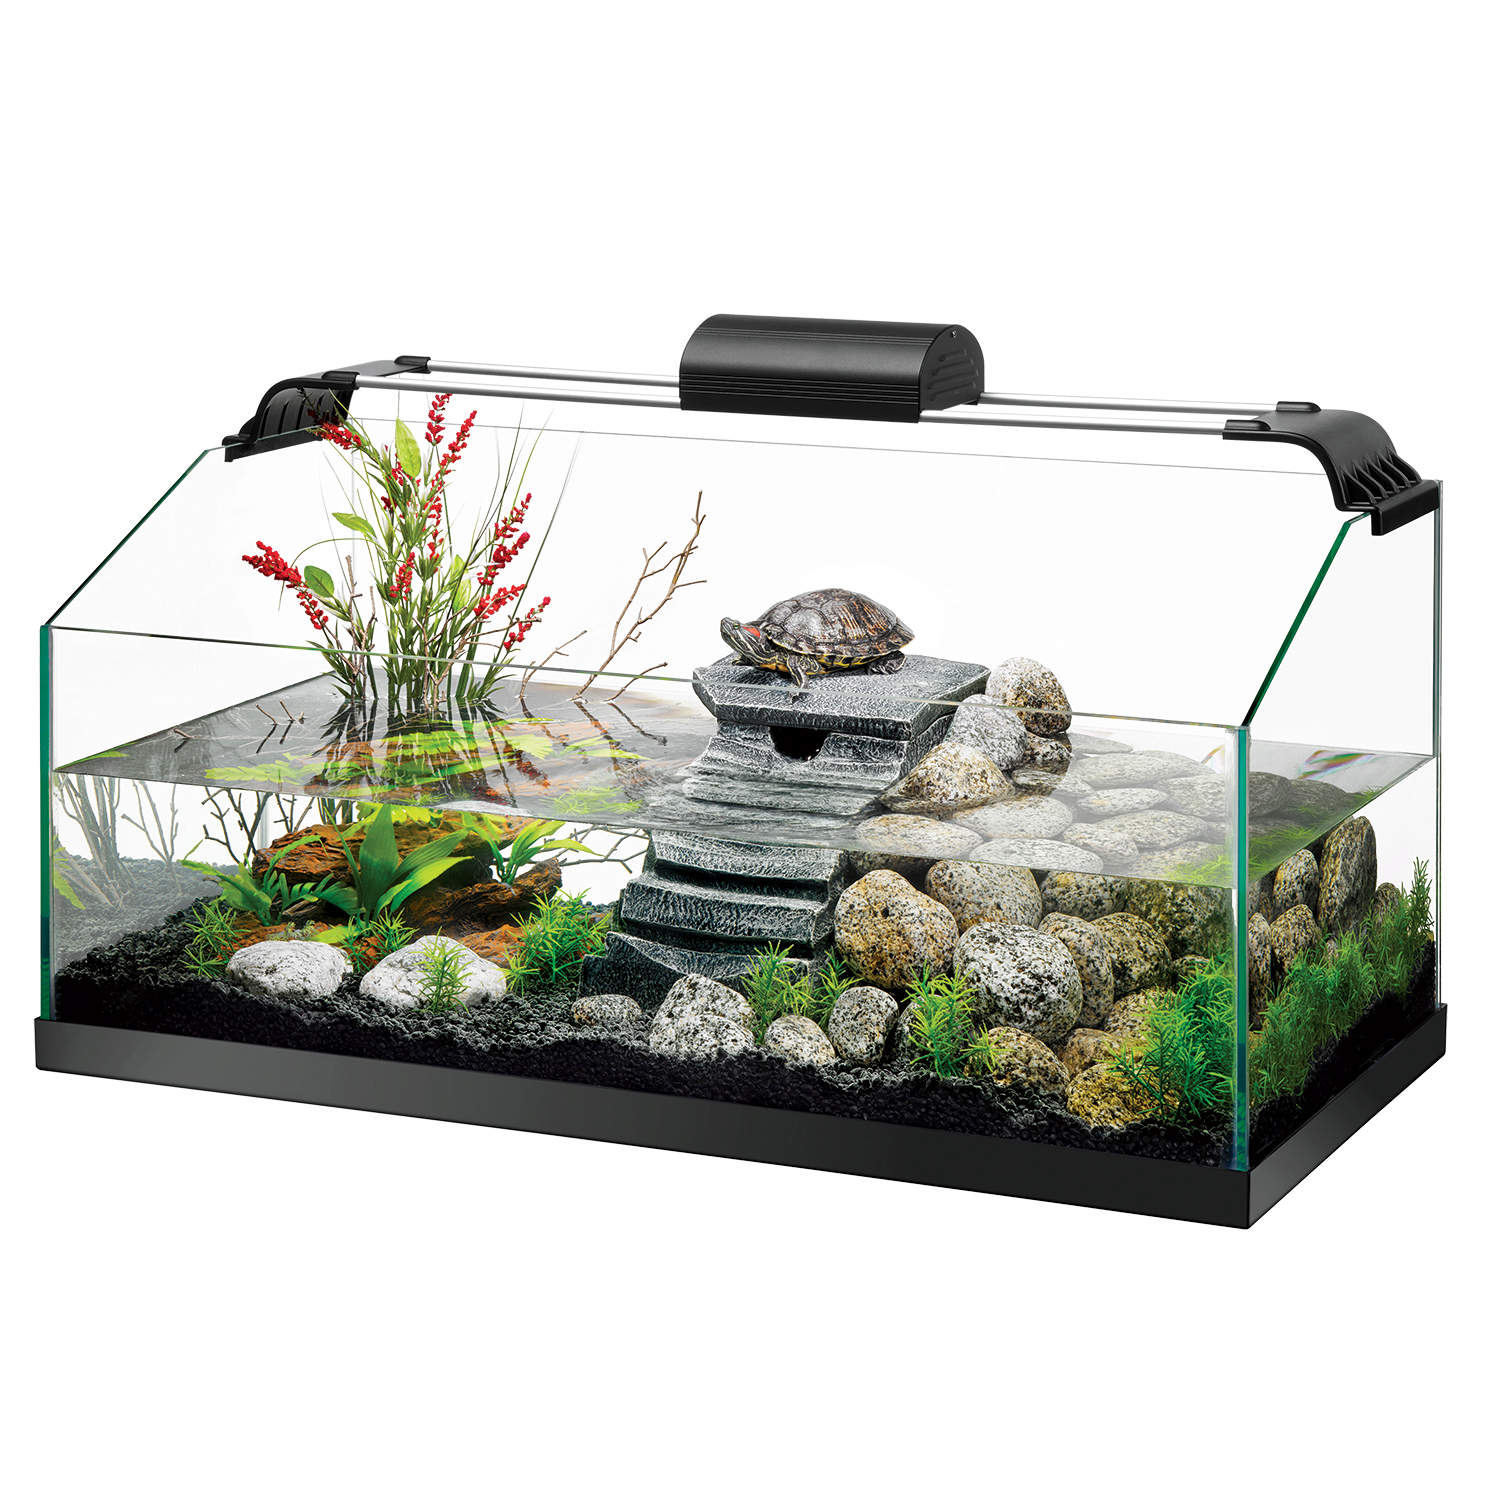 aquatic turtle basking on platform inside decorated premium turtle kit filled with water